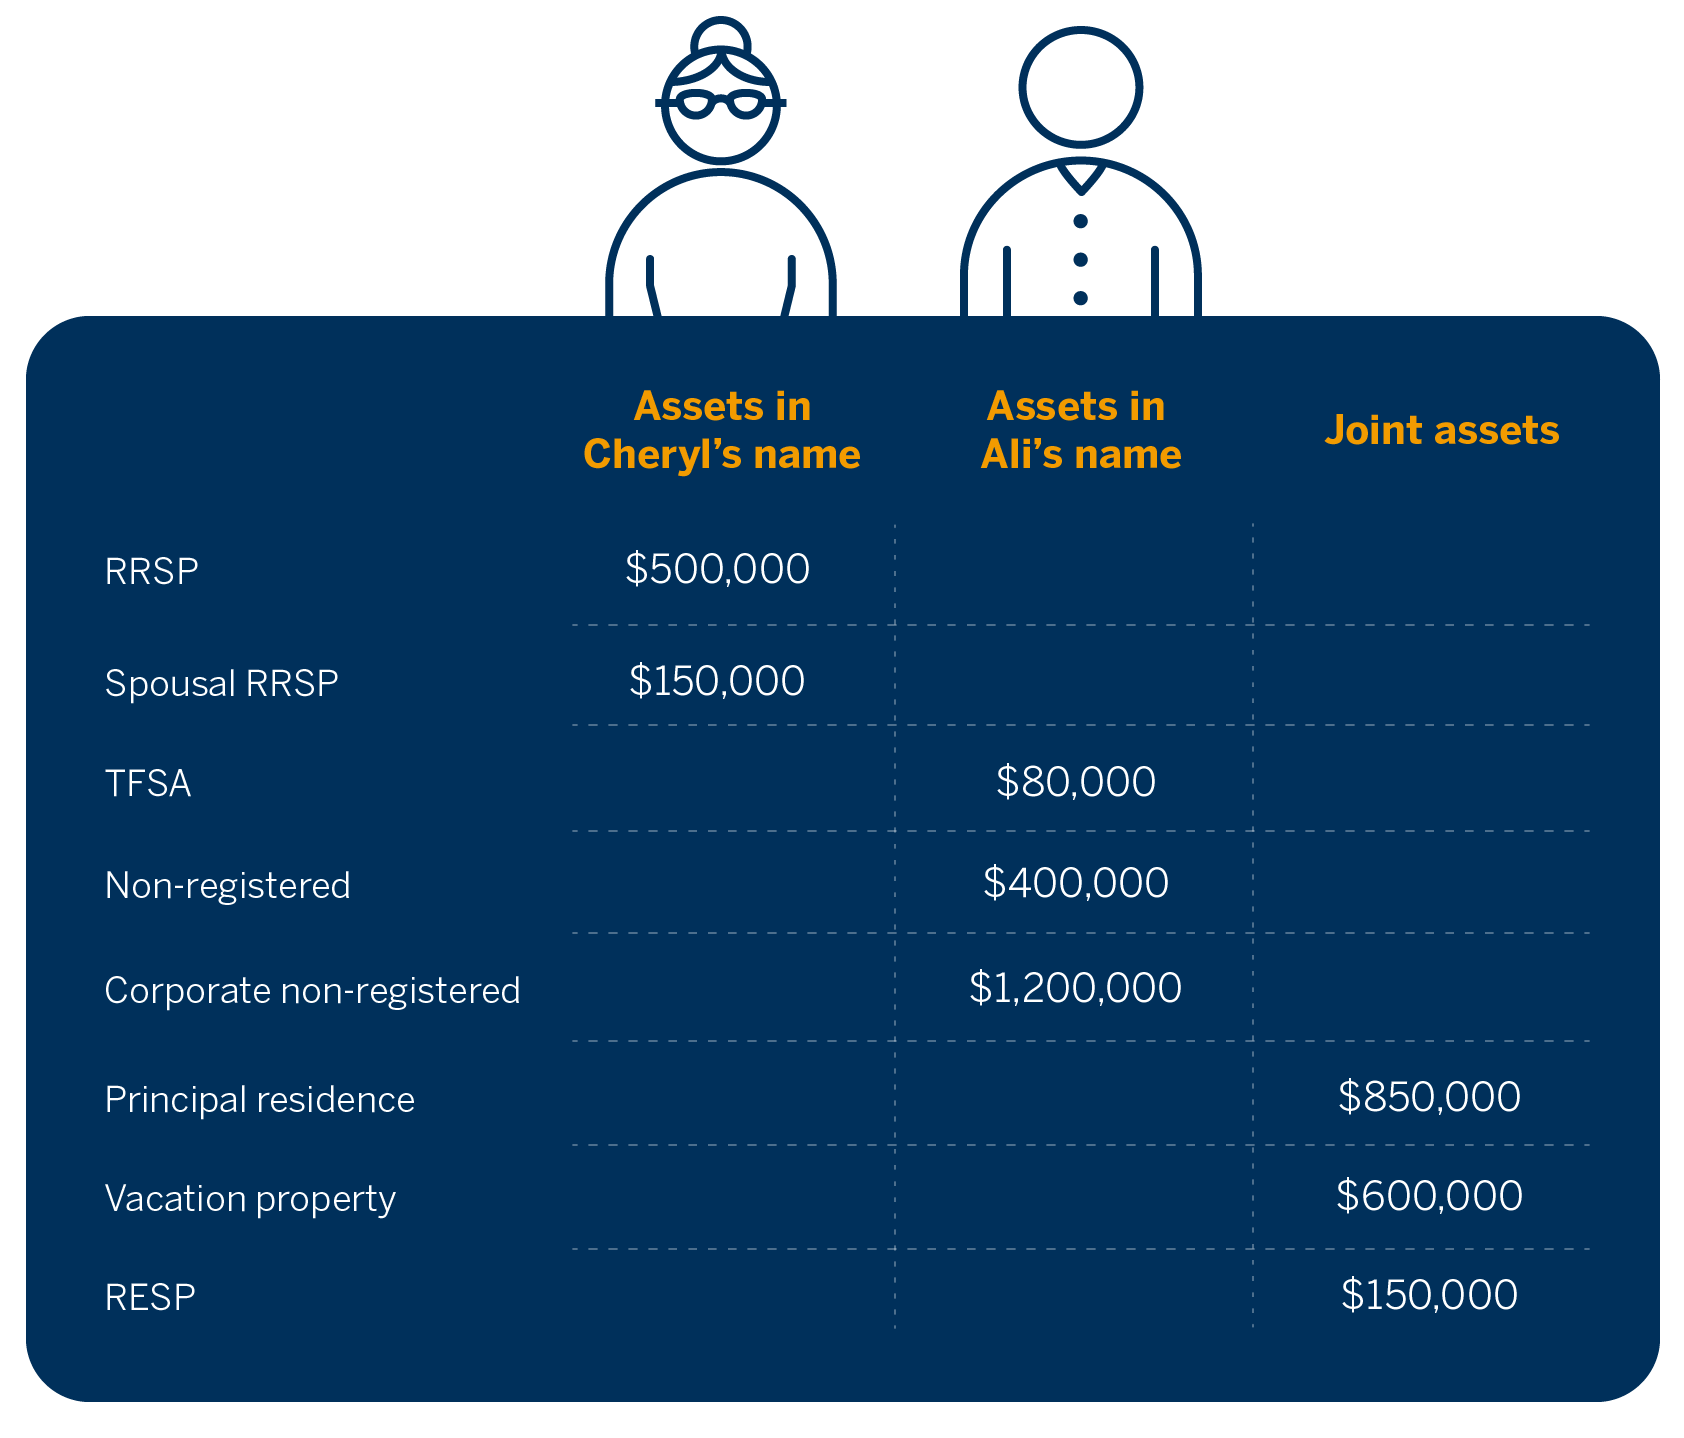 A table showing assets in Cheryl's name, assets in Ali's name and their joint assets